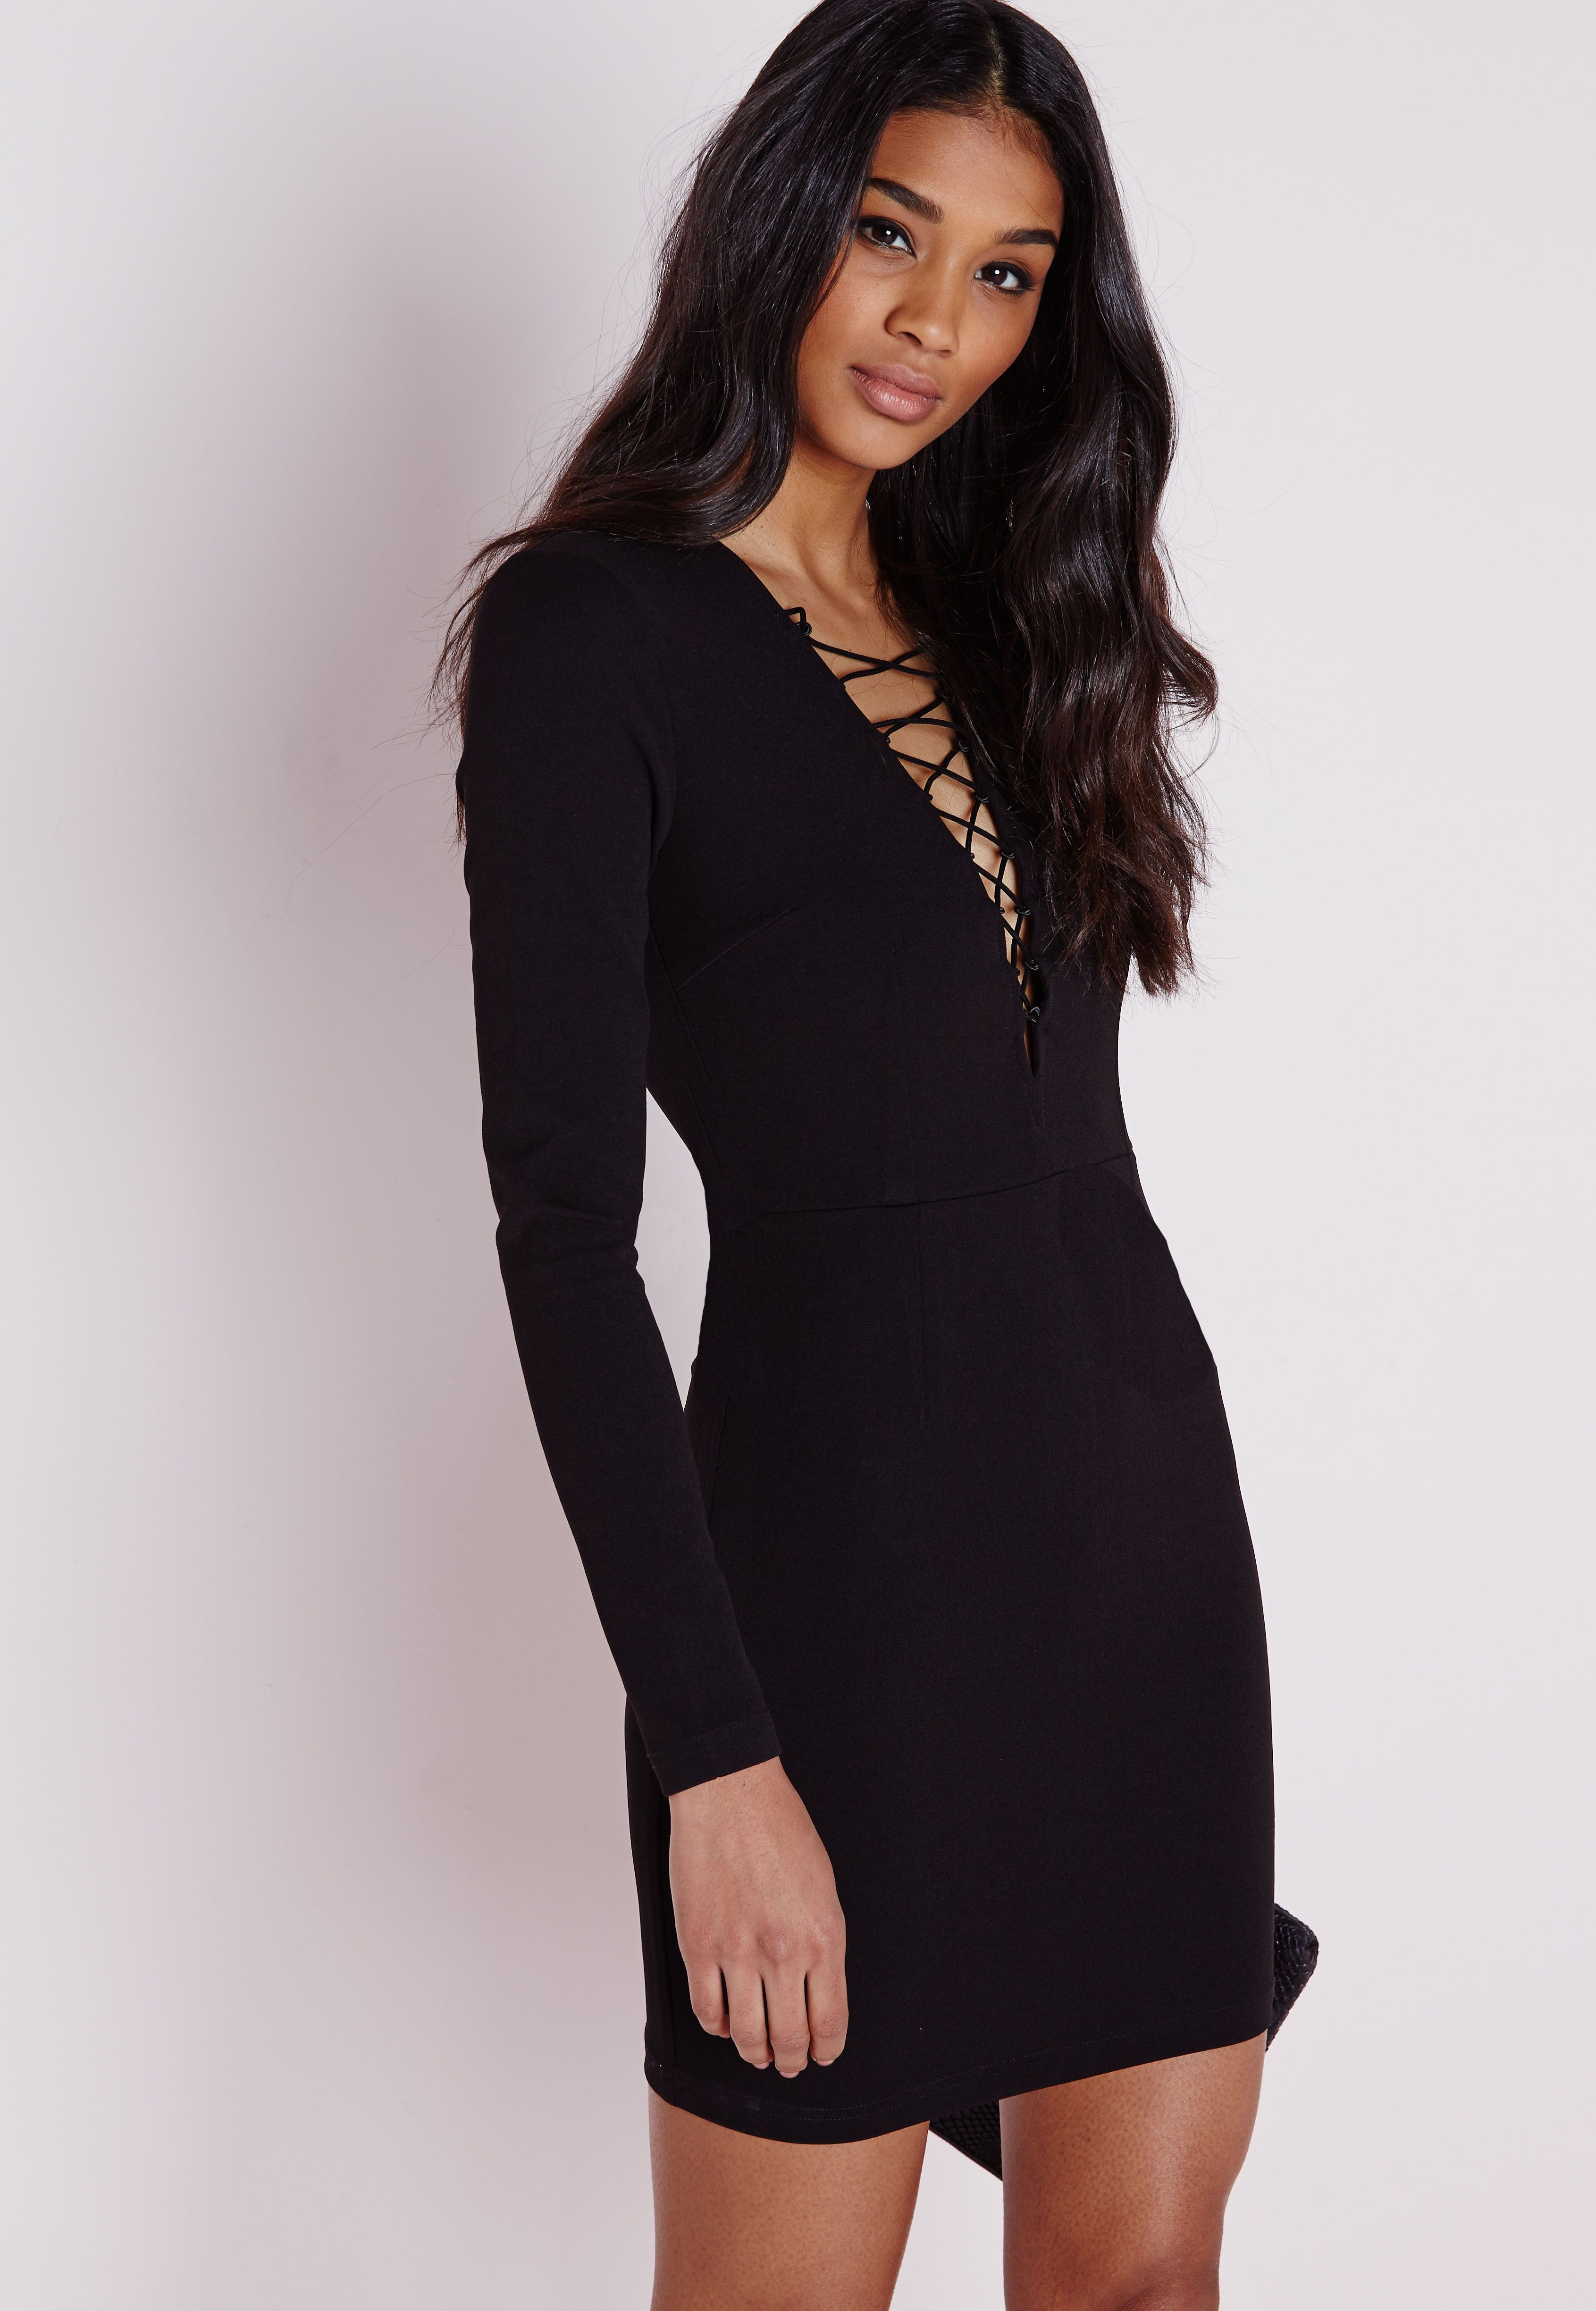 Lace up front dress long sleeve